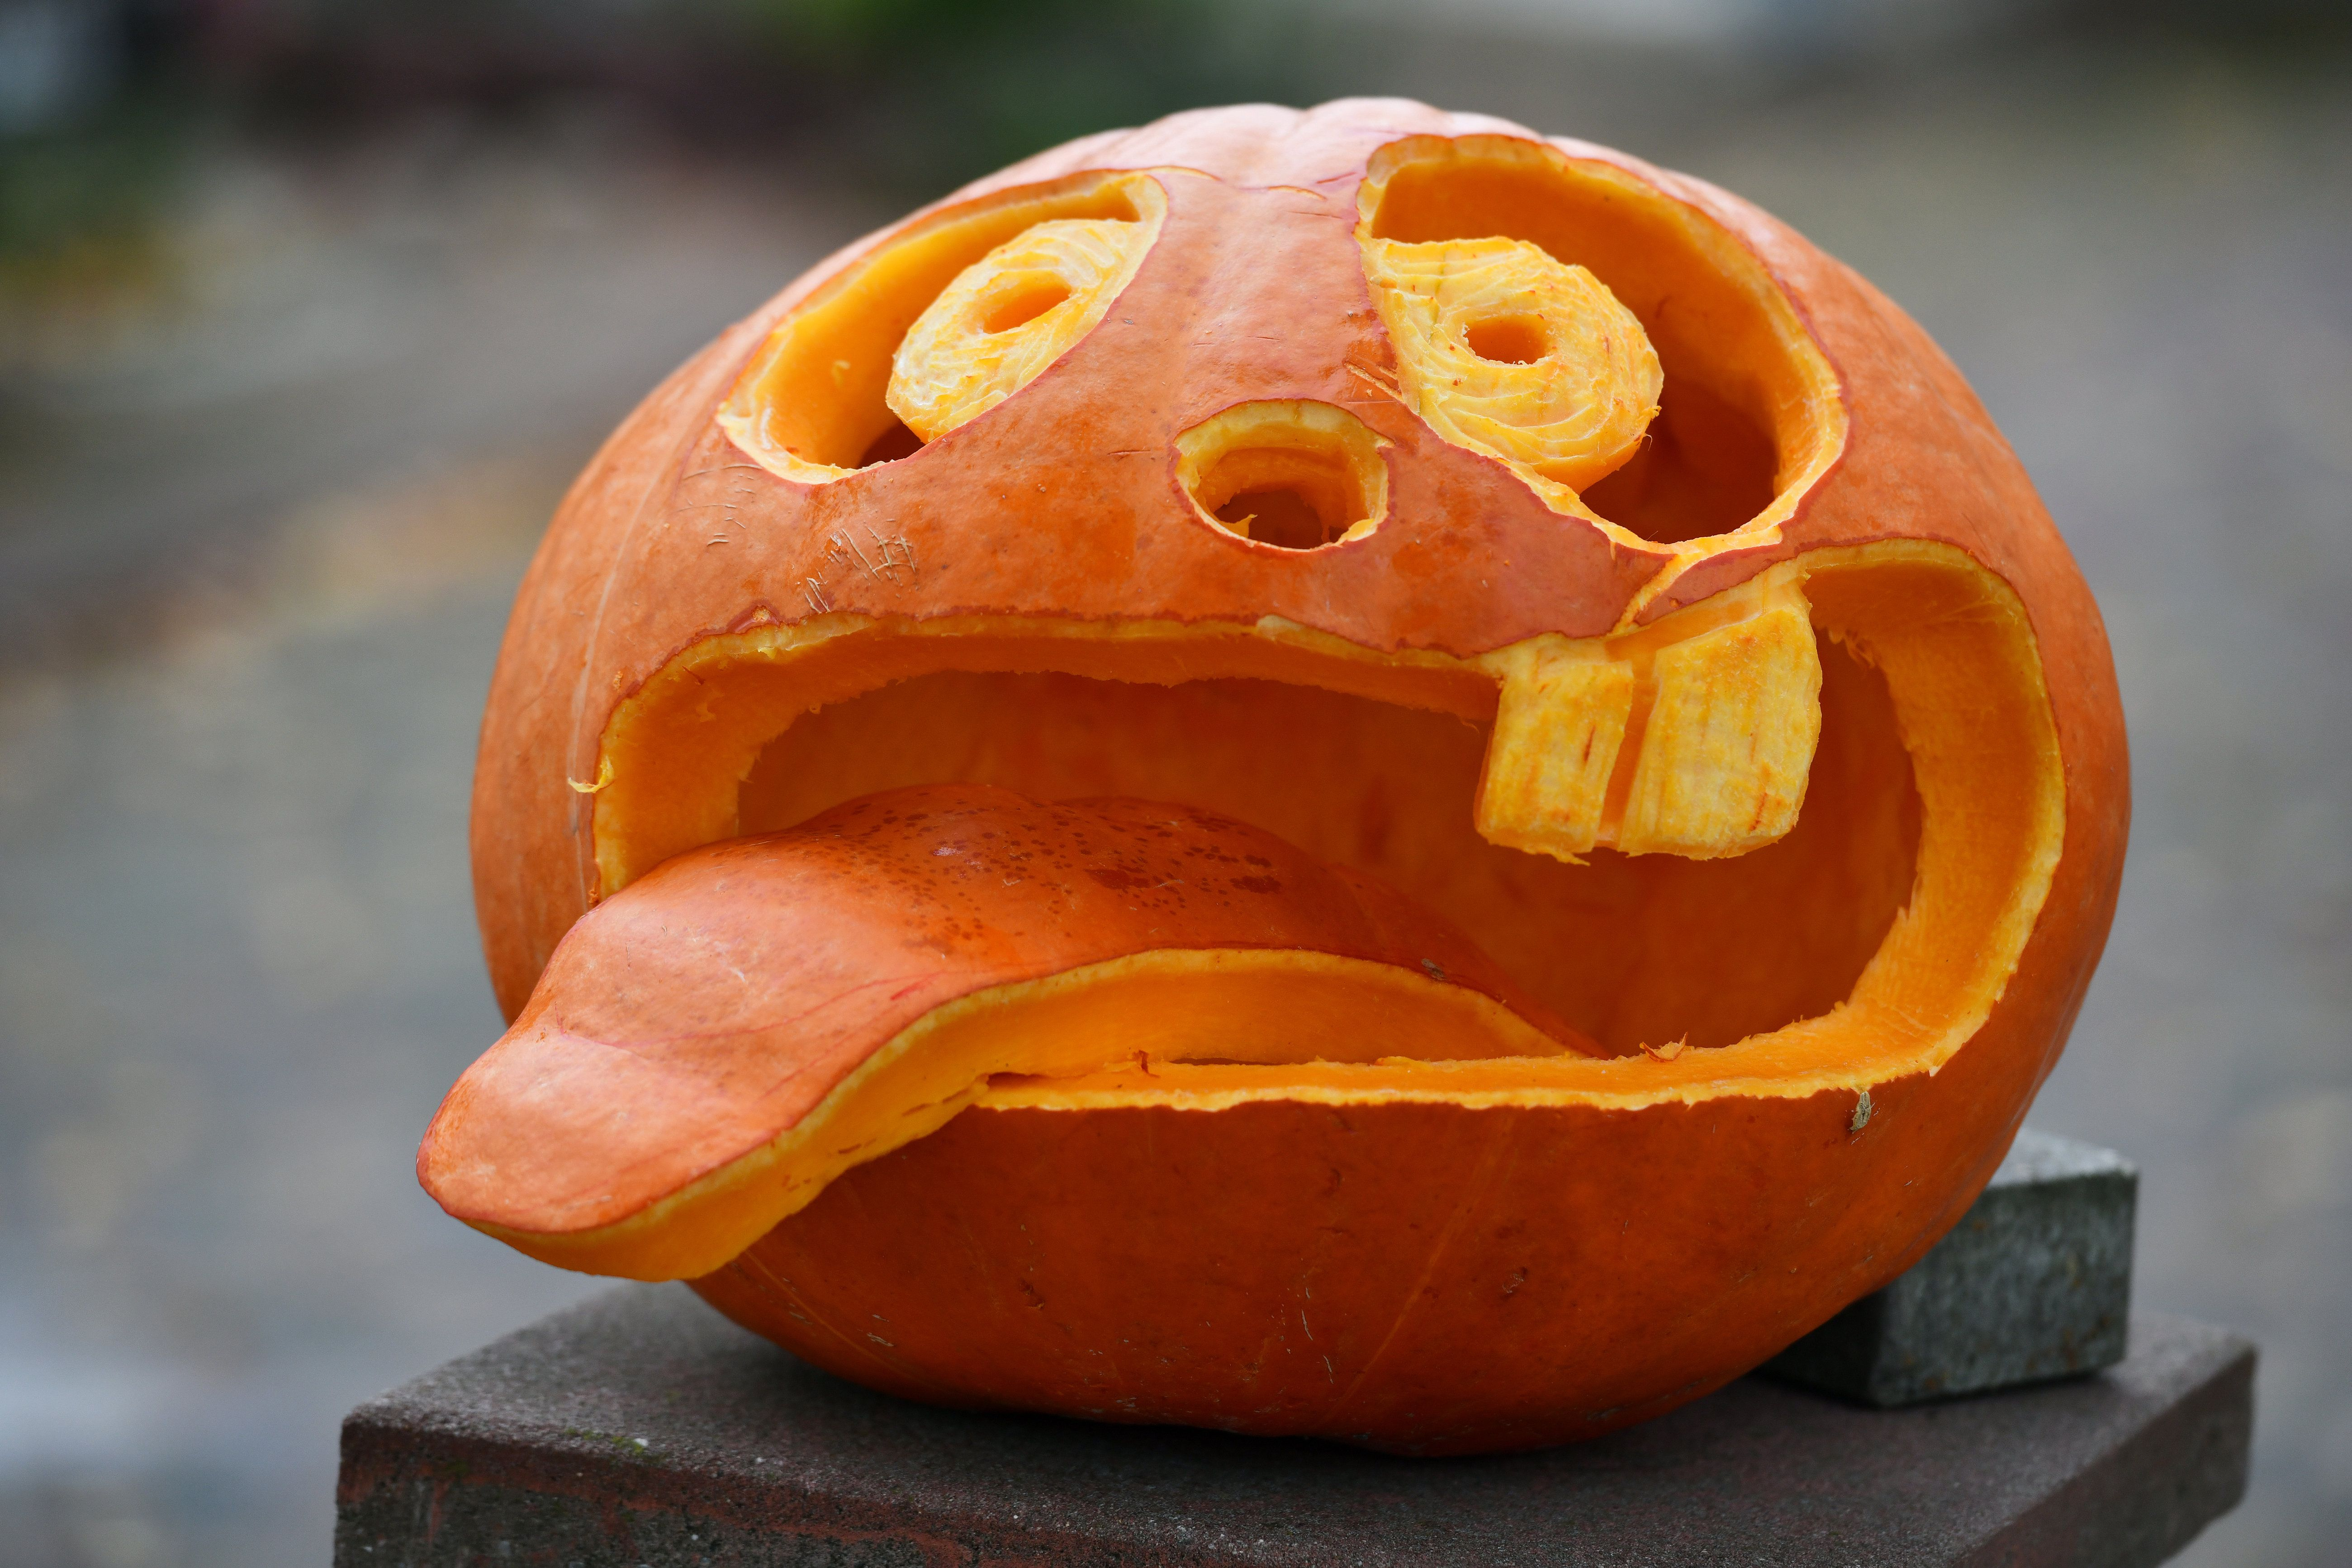 Mine is pretty flat and even. 55 Easy Pumpkin Carving Ideas For Halloween 2021 Creative Pumpkin Carving Designs